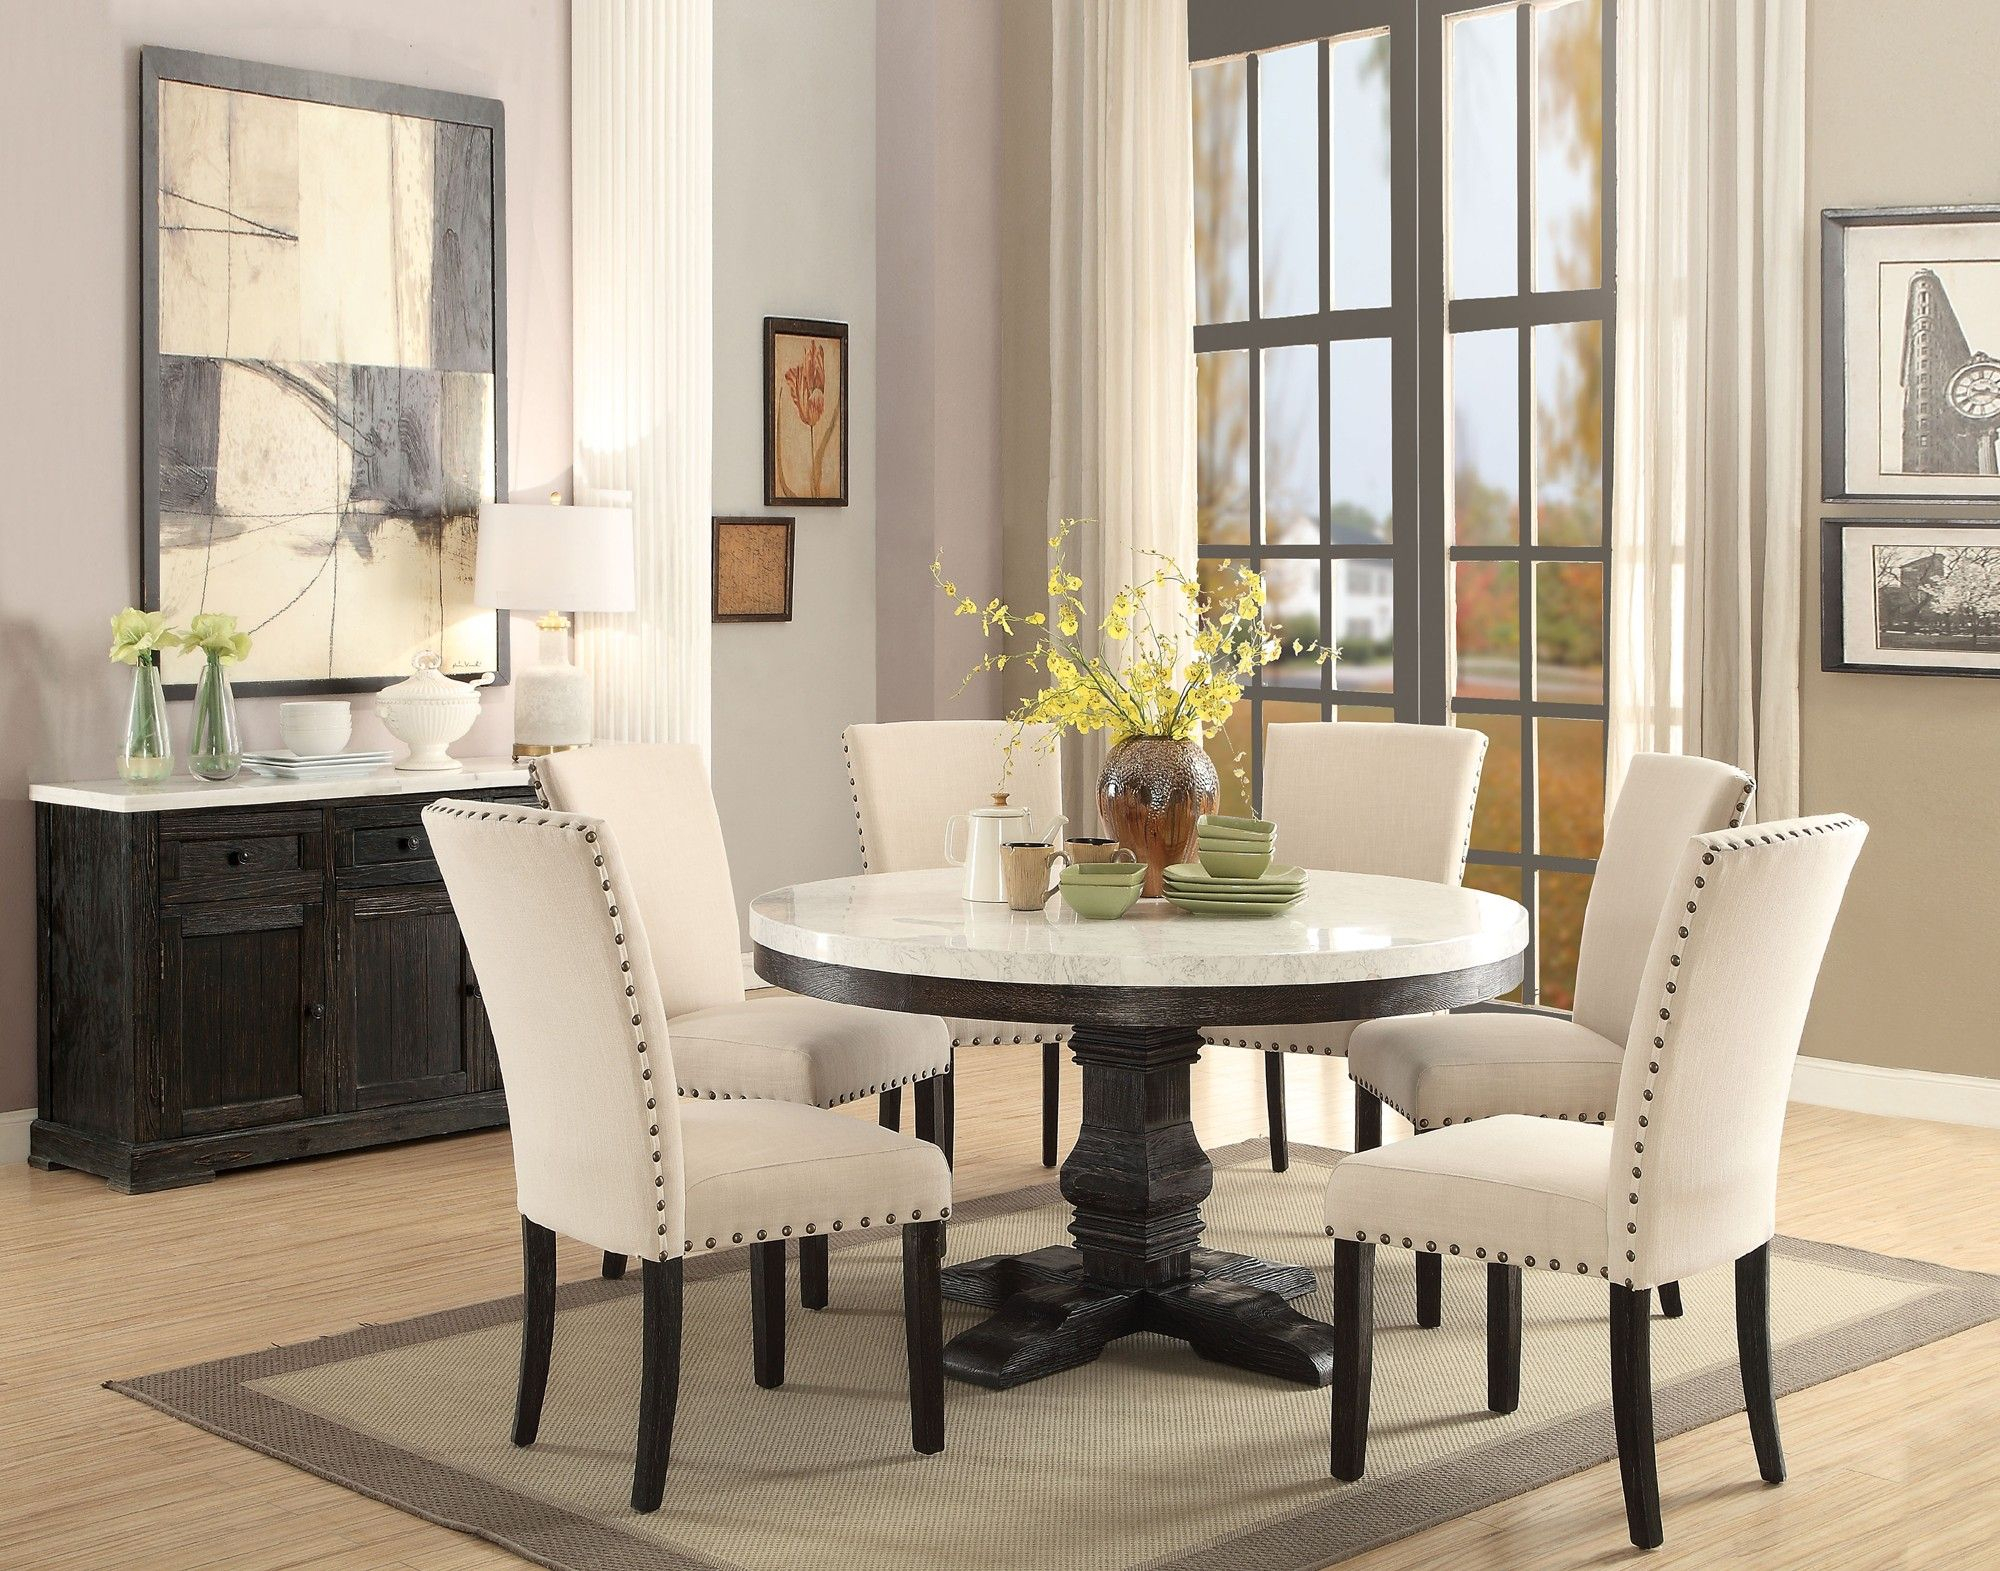 Acme 72845 Nolan 5Pcs White Marble Top Round Dining Table With Newest Nolan Round Pedestal Dining Tables (View 6 of 25)